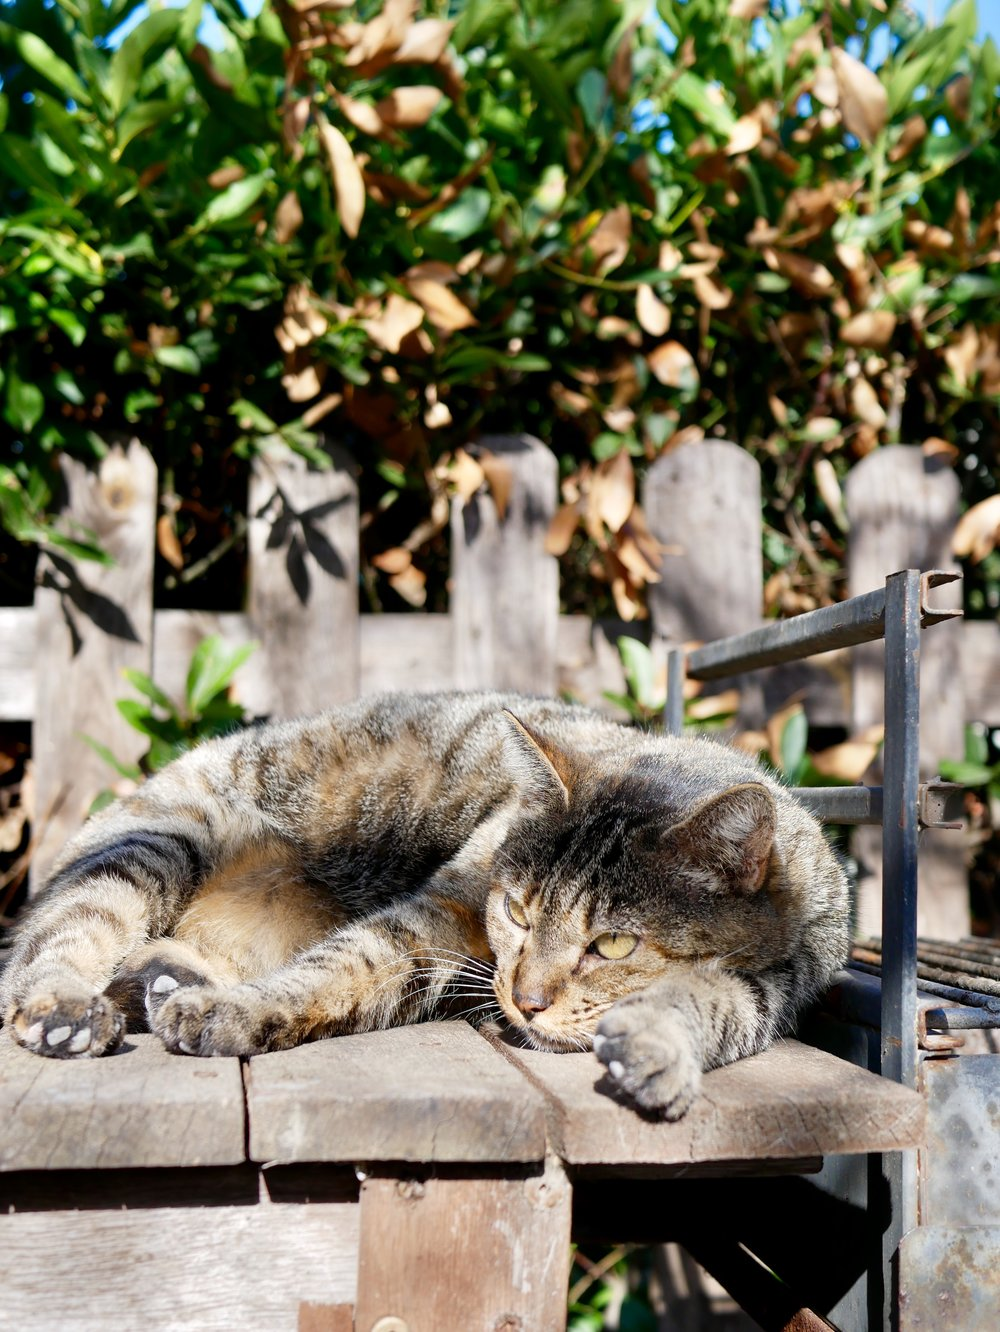 Tina Cat sleeping in the sun